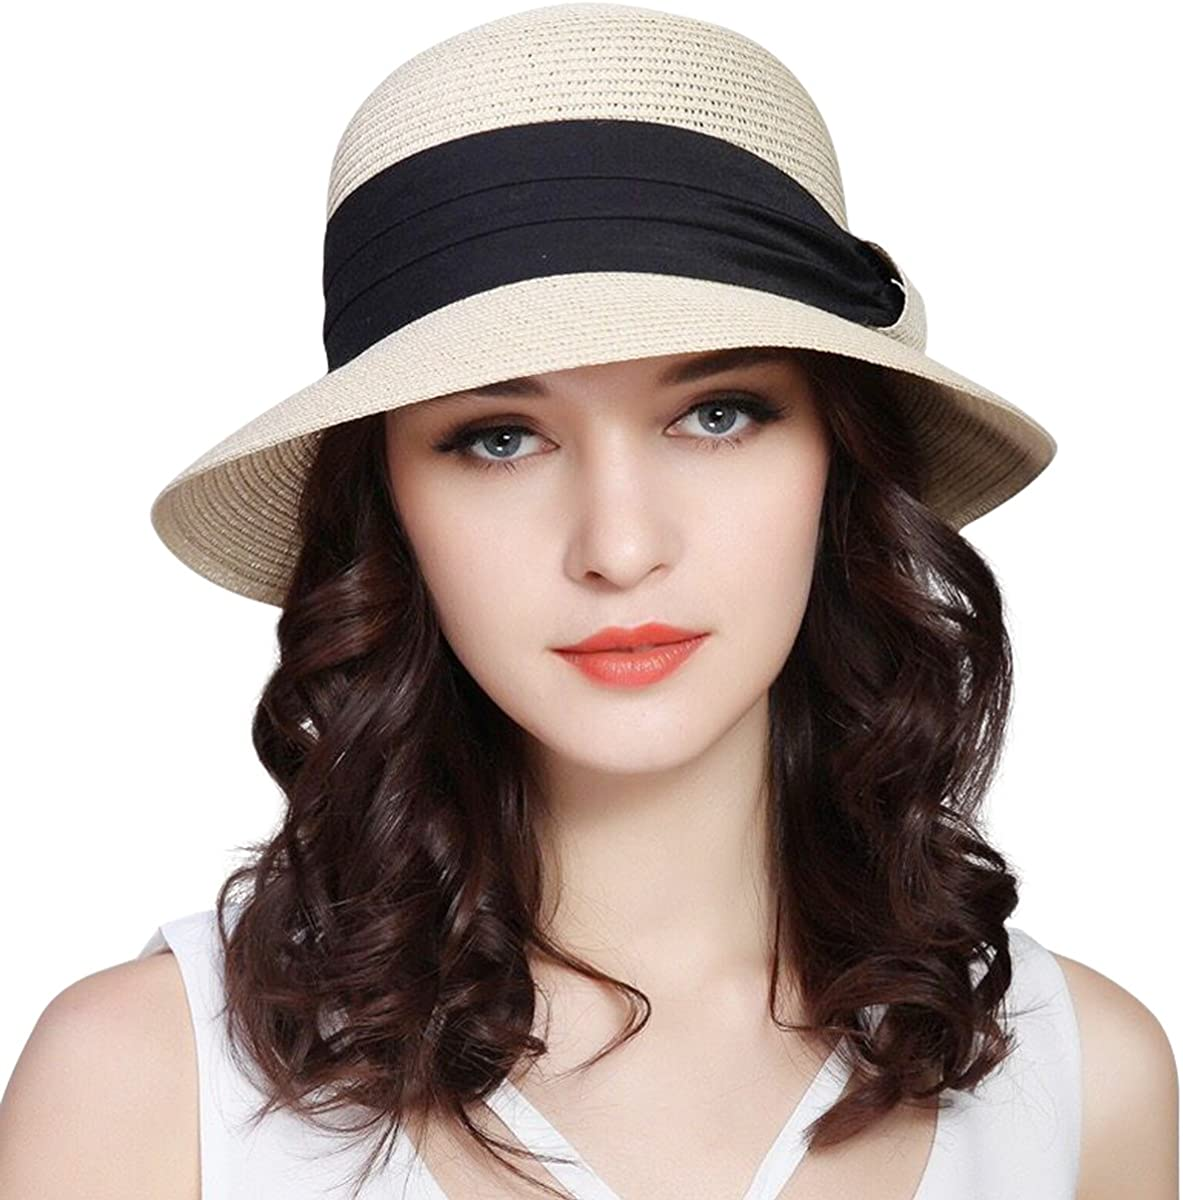 Flower Woman Sun Hats Foldable Wide Wave raw Hat Shade Summer Beach Cap Anti-Uv